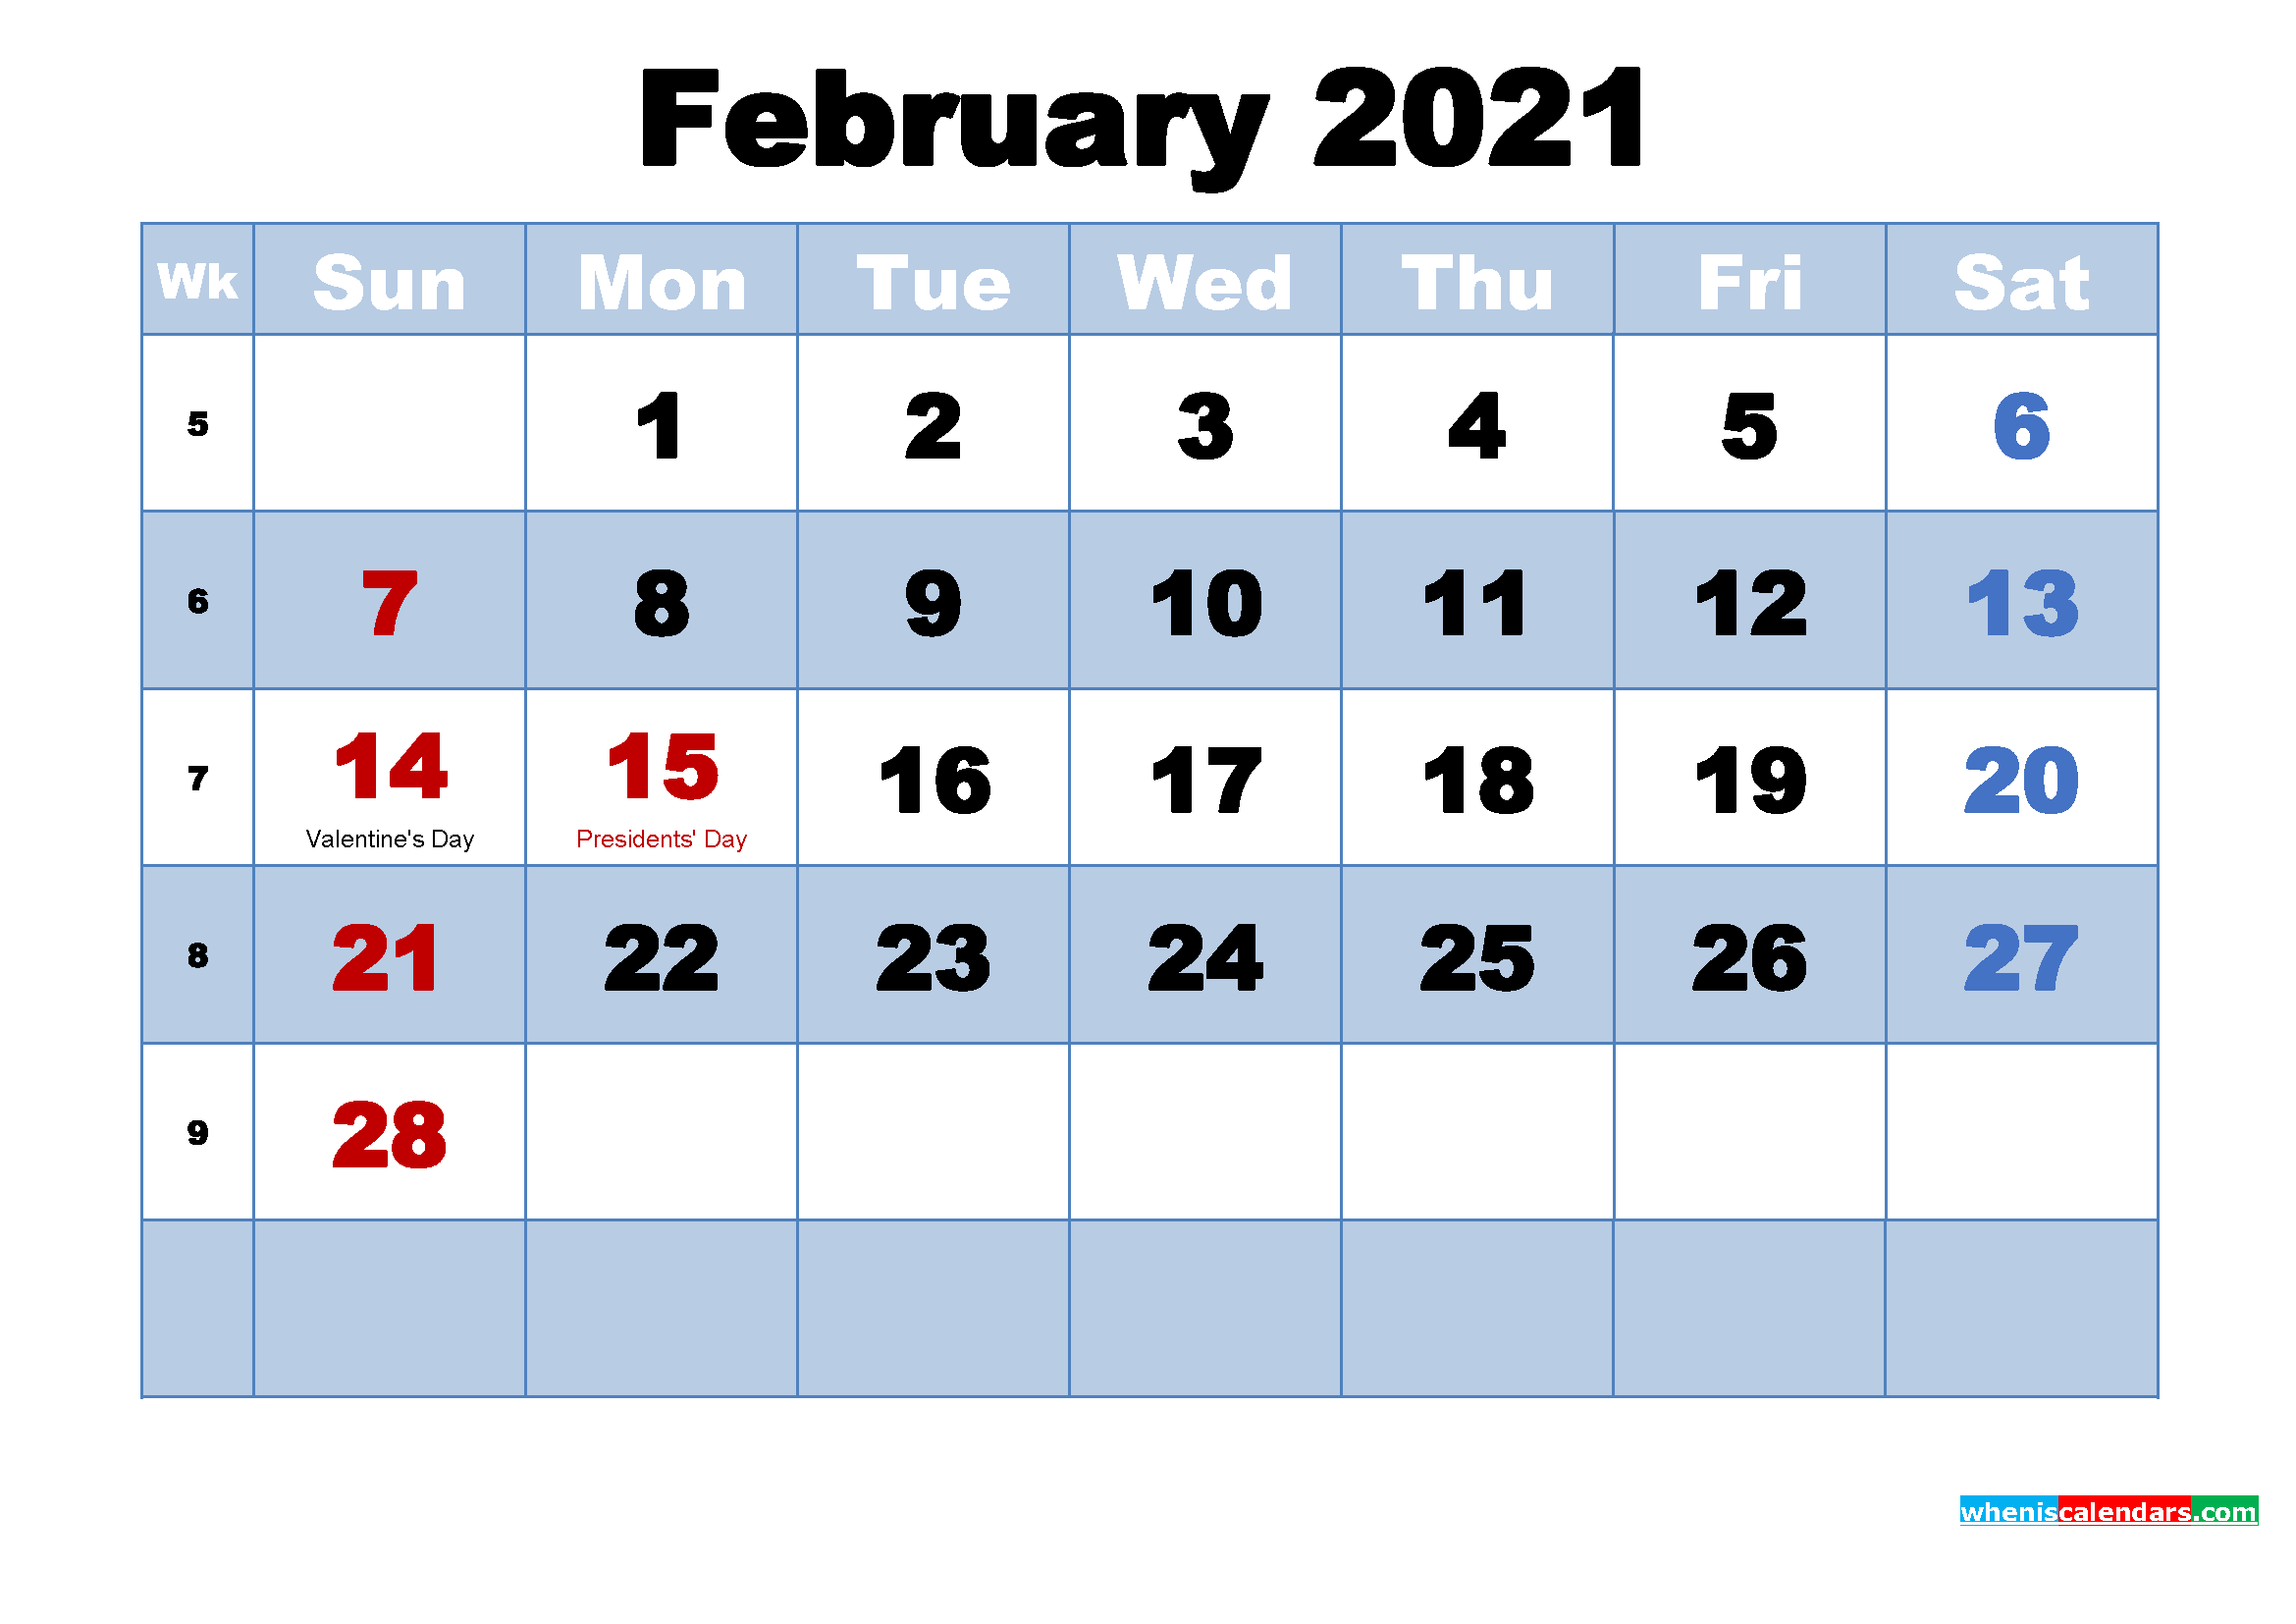 February 2021 Calendar Wallpapers   Top February 2021 2339x1654